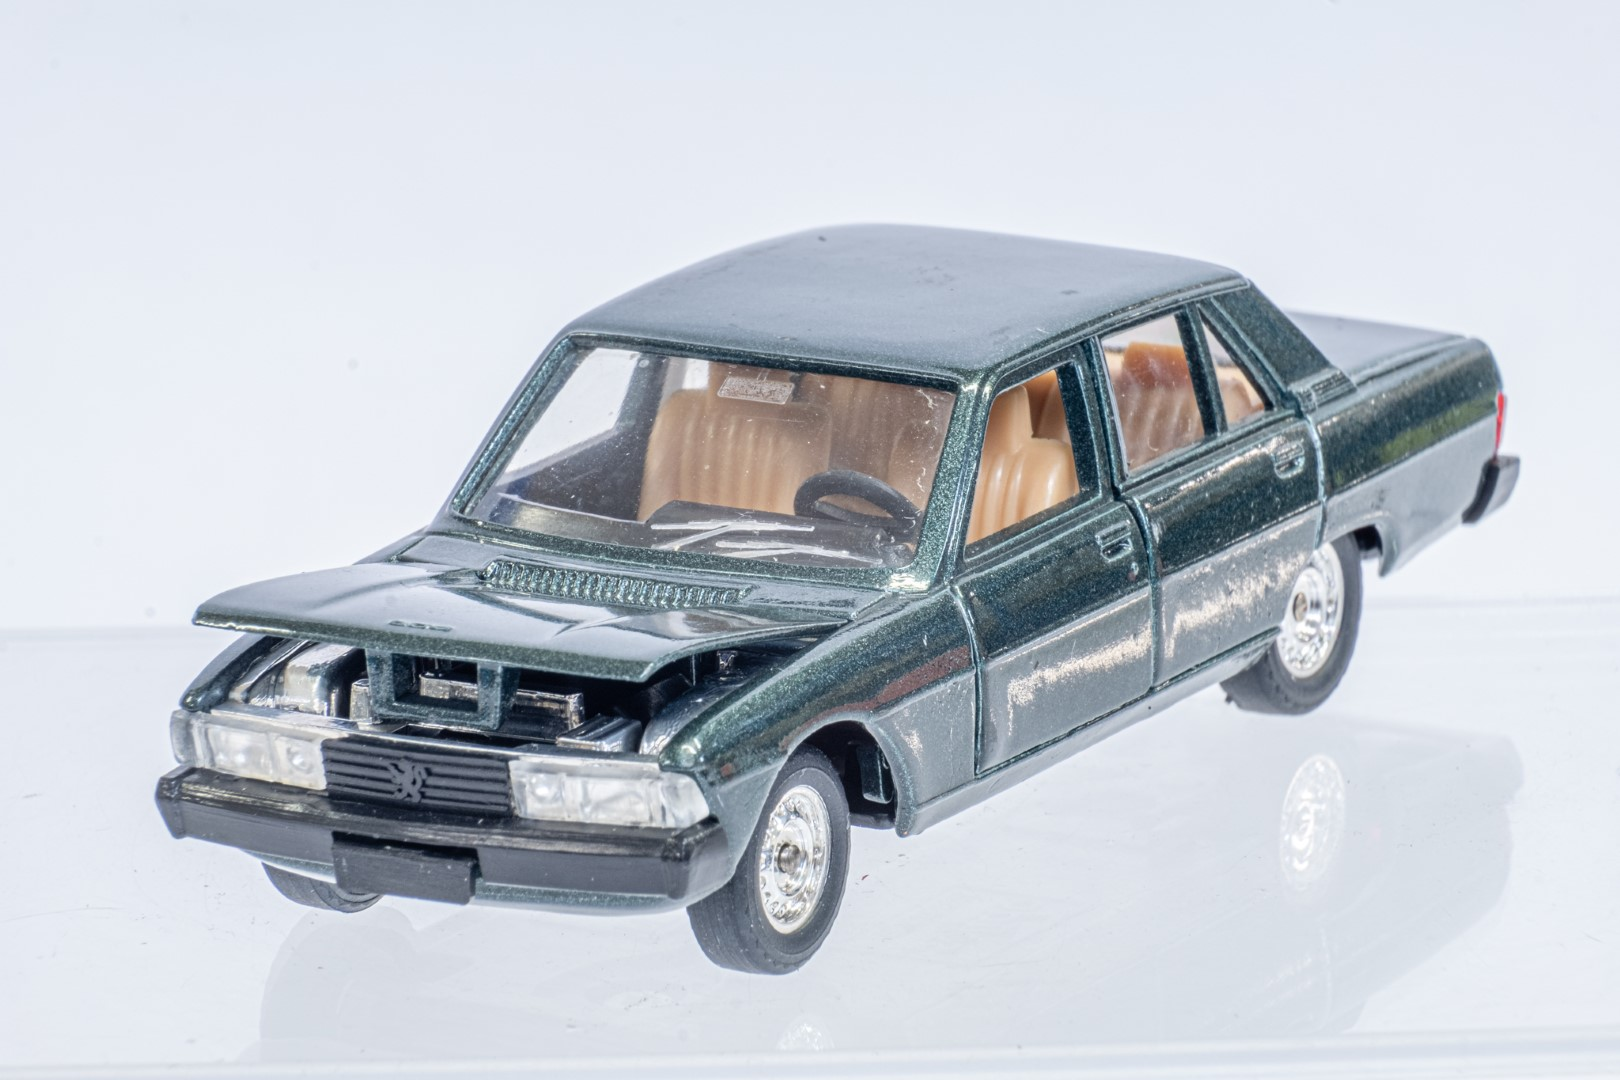 Solido 40 Peugeot 604 - Image 5 of 8